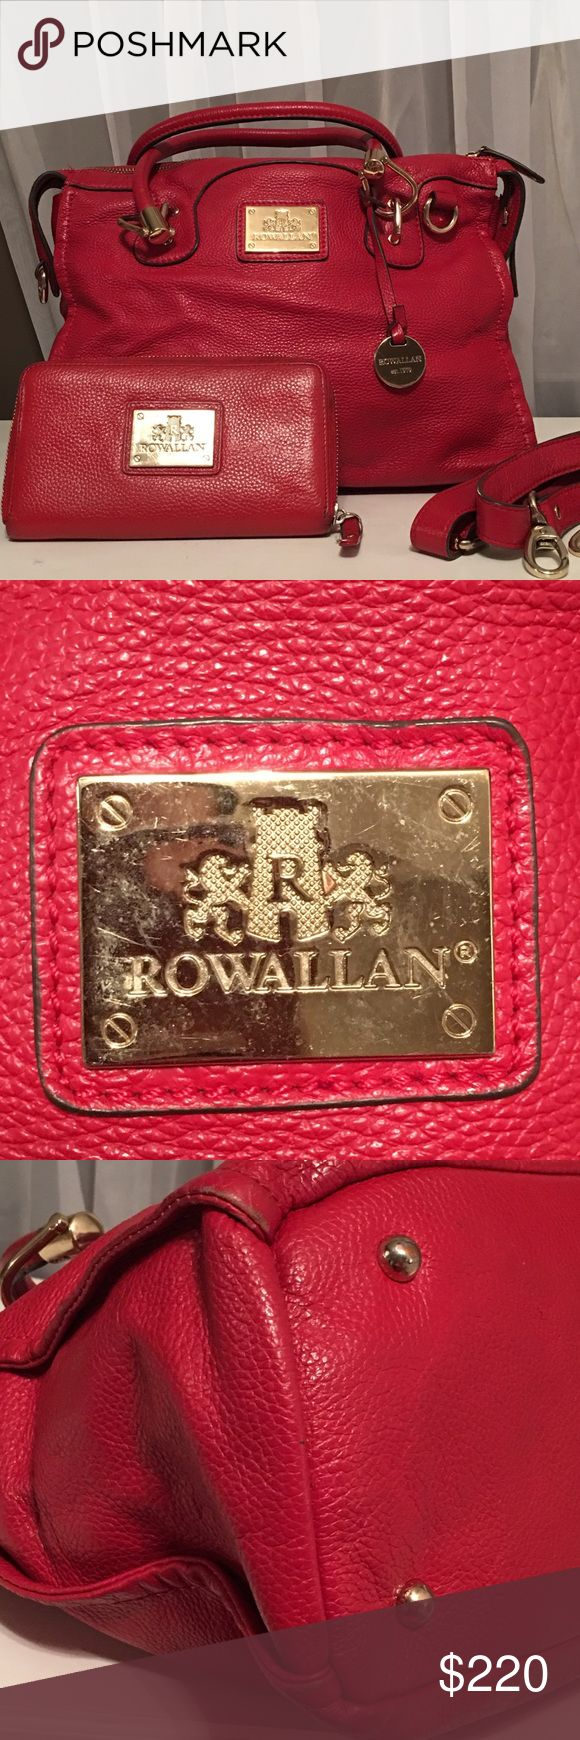 Rowallan Red Pebbled Leather Bag & Wallet Rowallan of Scotland Red Pebbled Leather Handbag and Wallet  *please see separate listing with detailed pictures of wallet matching the red pebbled leather handbag. Not sold separately.   Please check pictures carefully for wear. Rowallan Bags Satchels